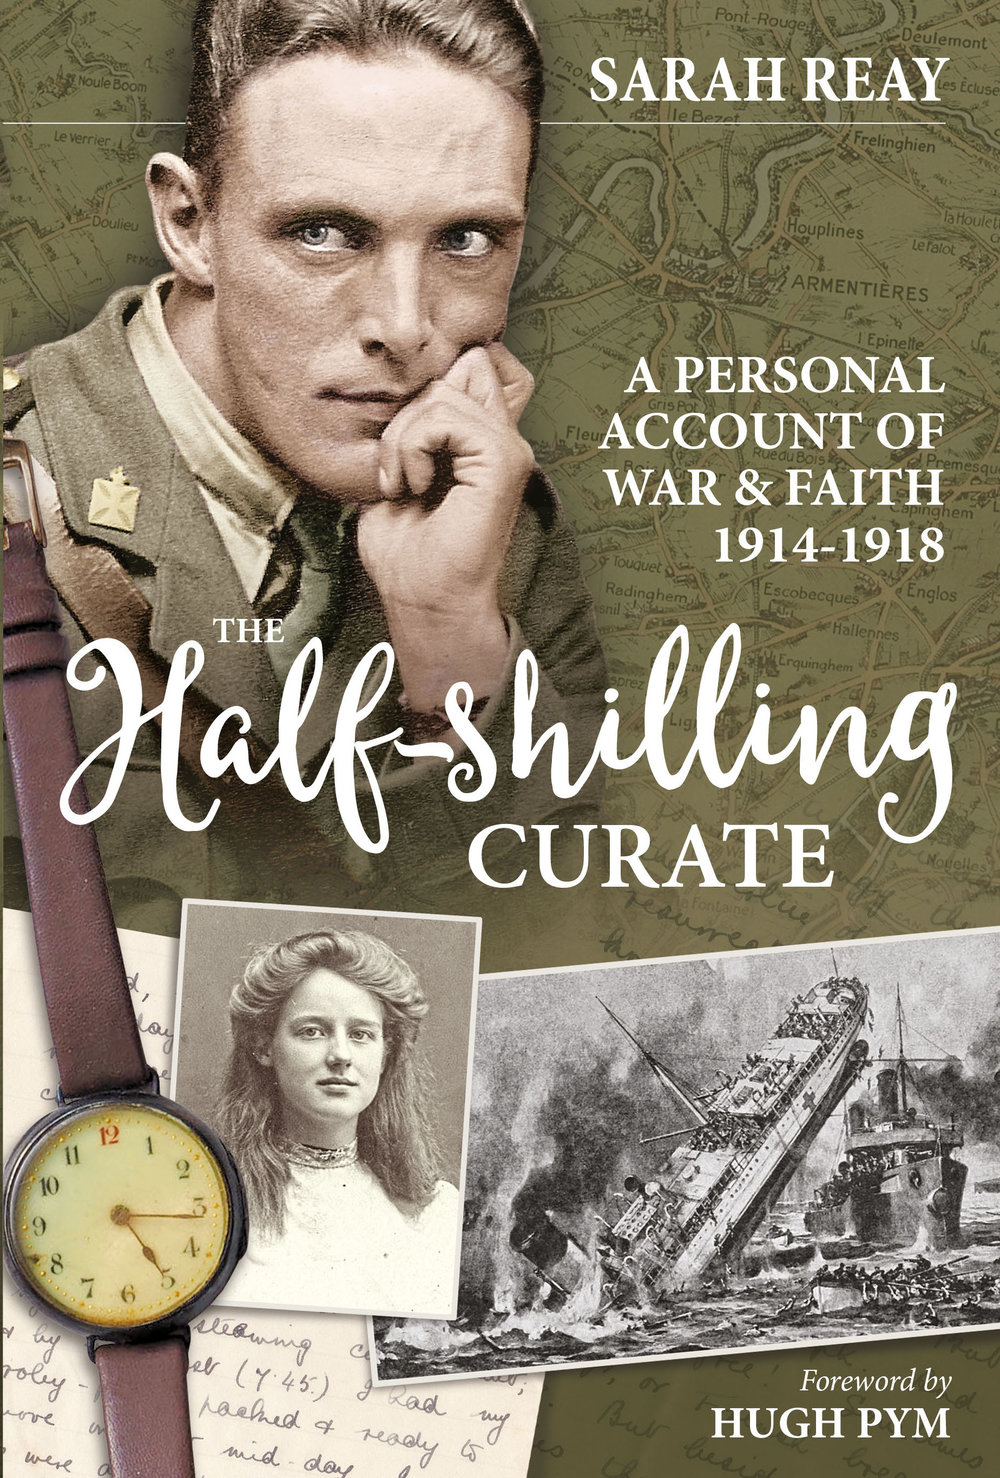 THE HALF SHILLING CURATE - front book cover -hbc.jpg